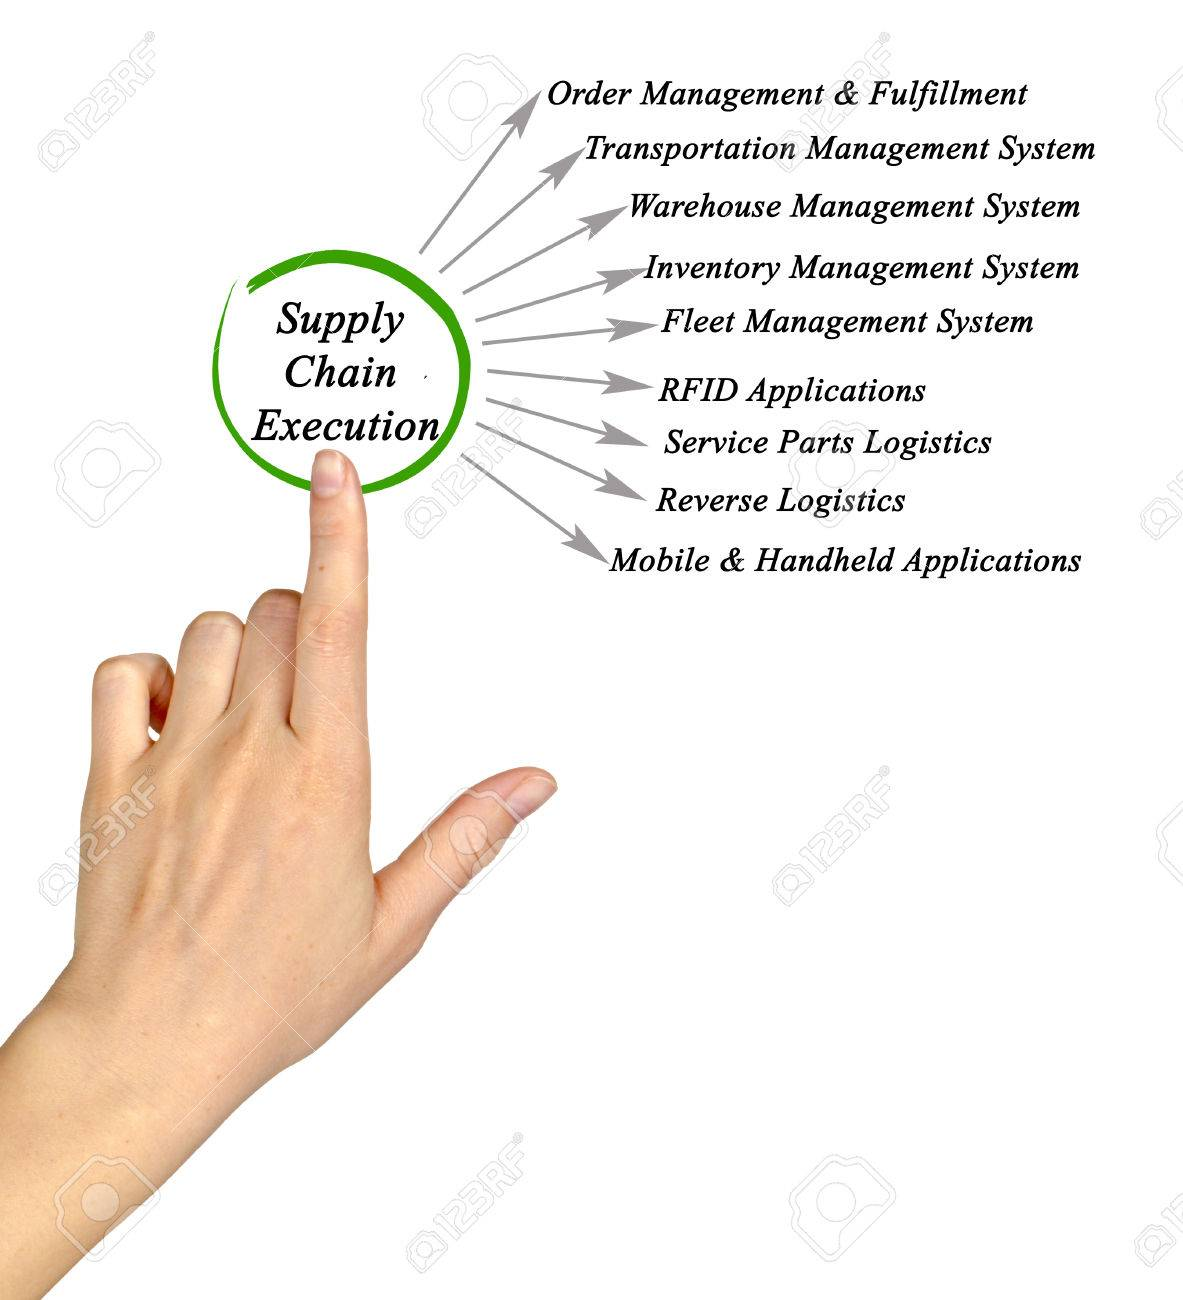 hight resolution of diagram of supply chain execution stock photo 57234576